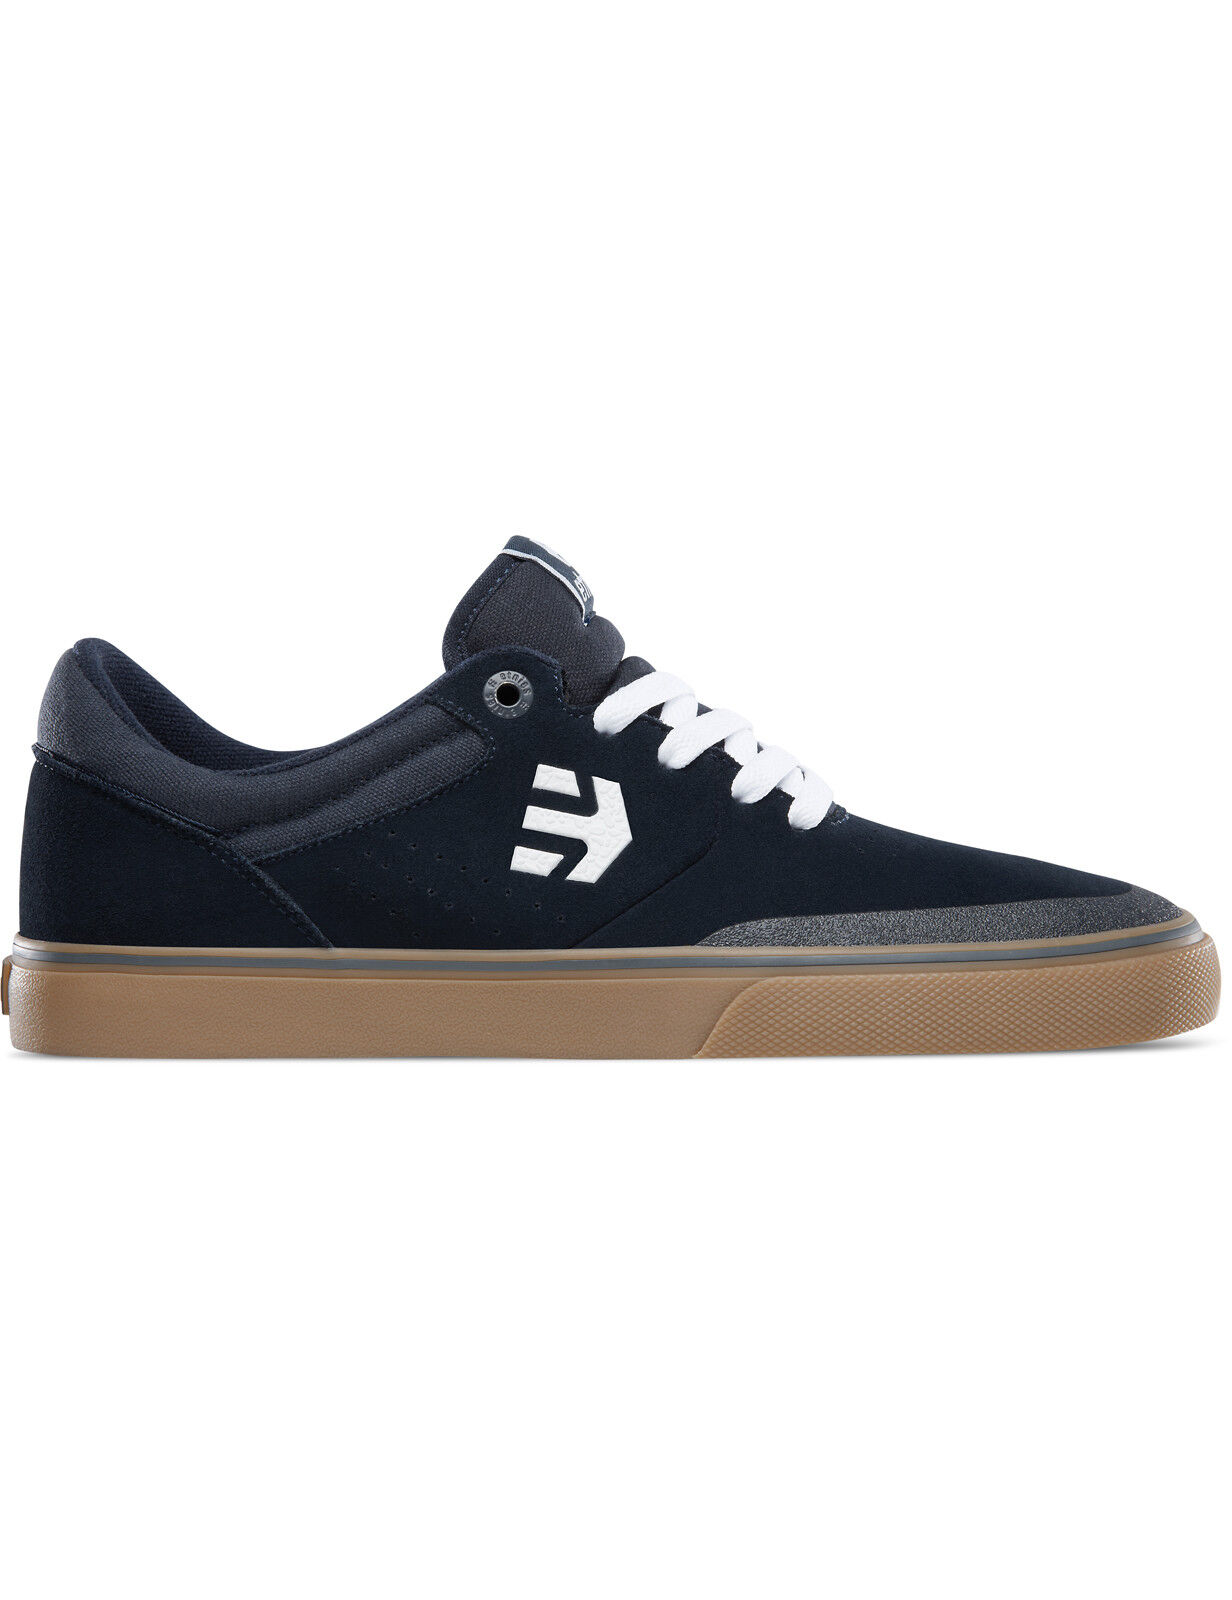 Etnies Marana Vulc Trainers in Navy White Gum